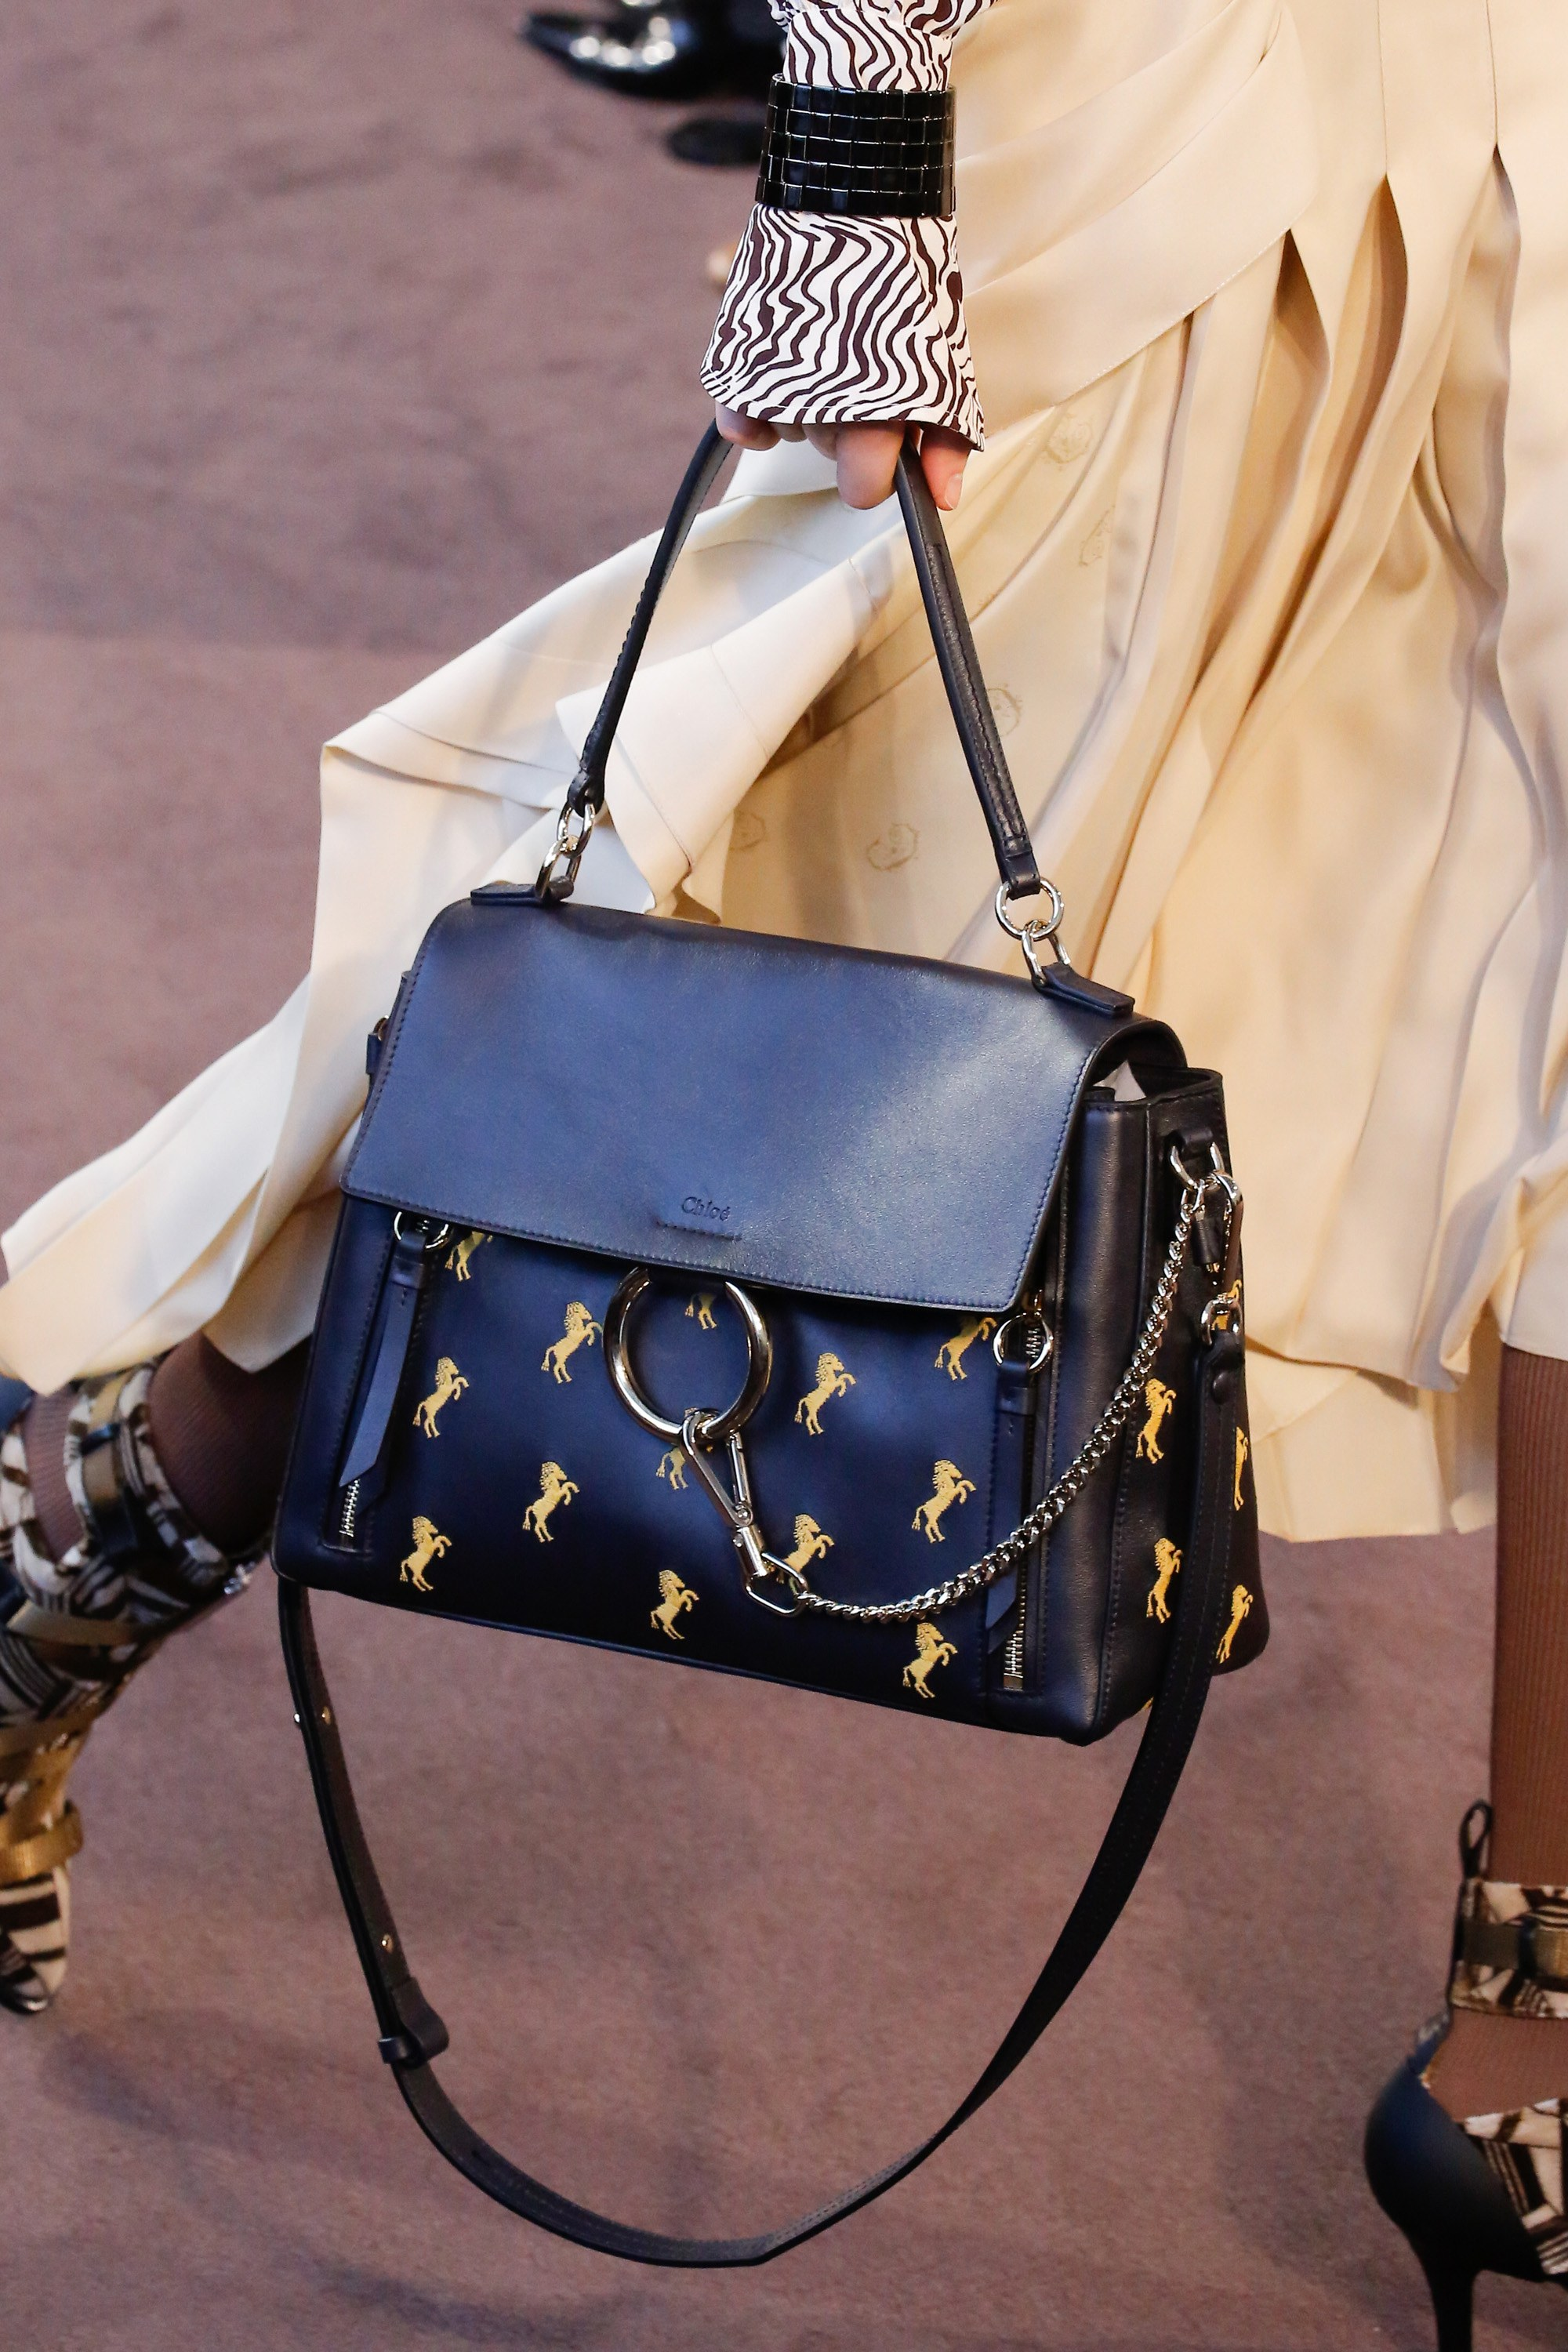 Chloe Fall Winter 2018 Runway Bag Collection Spotted Fashion